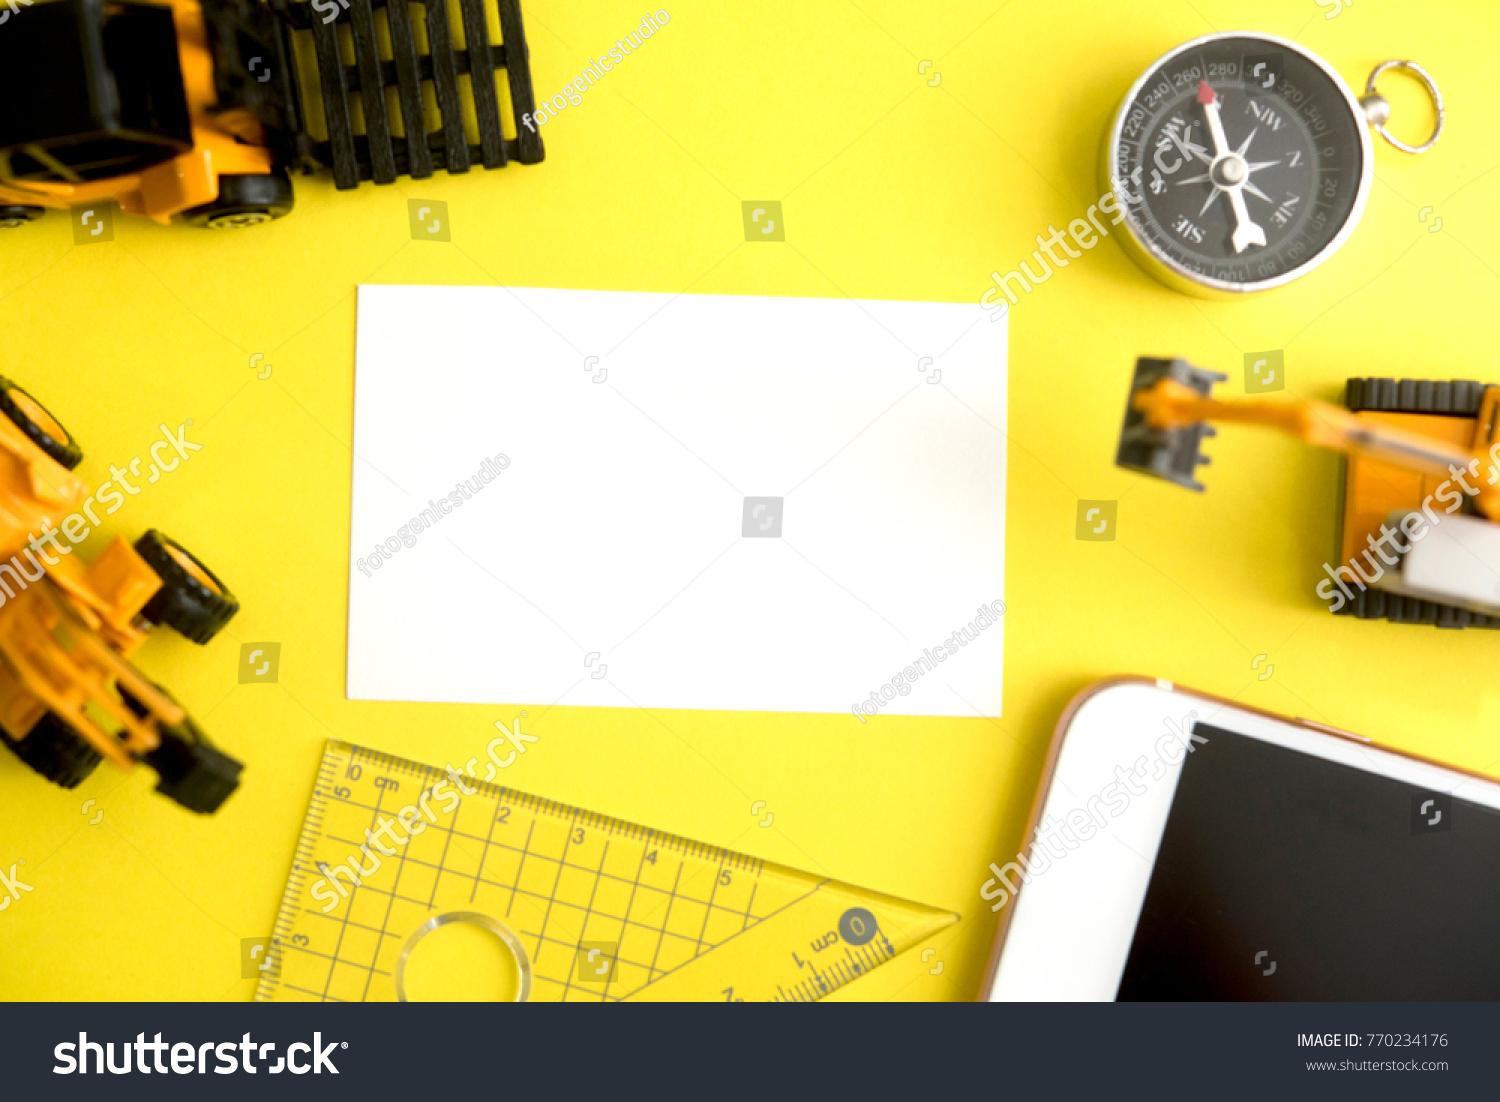 Blank White Business Card Miniature Construction Stock Photo ...